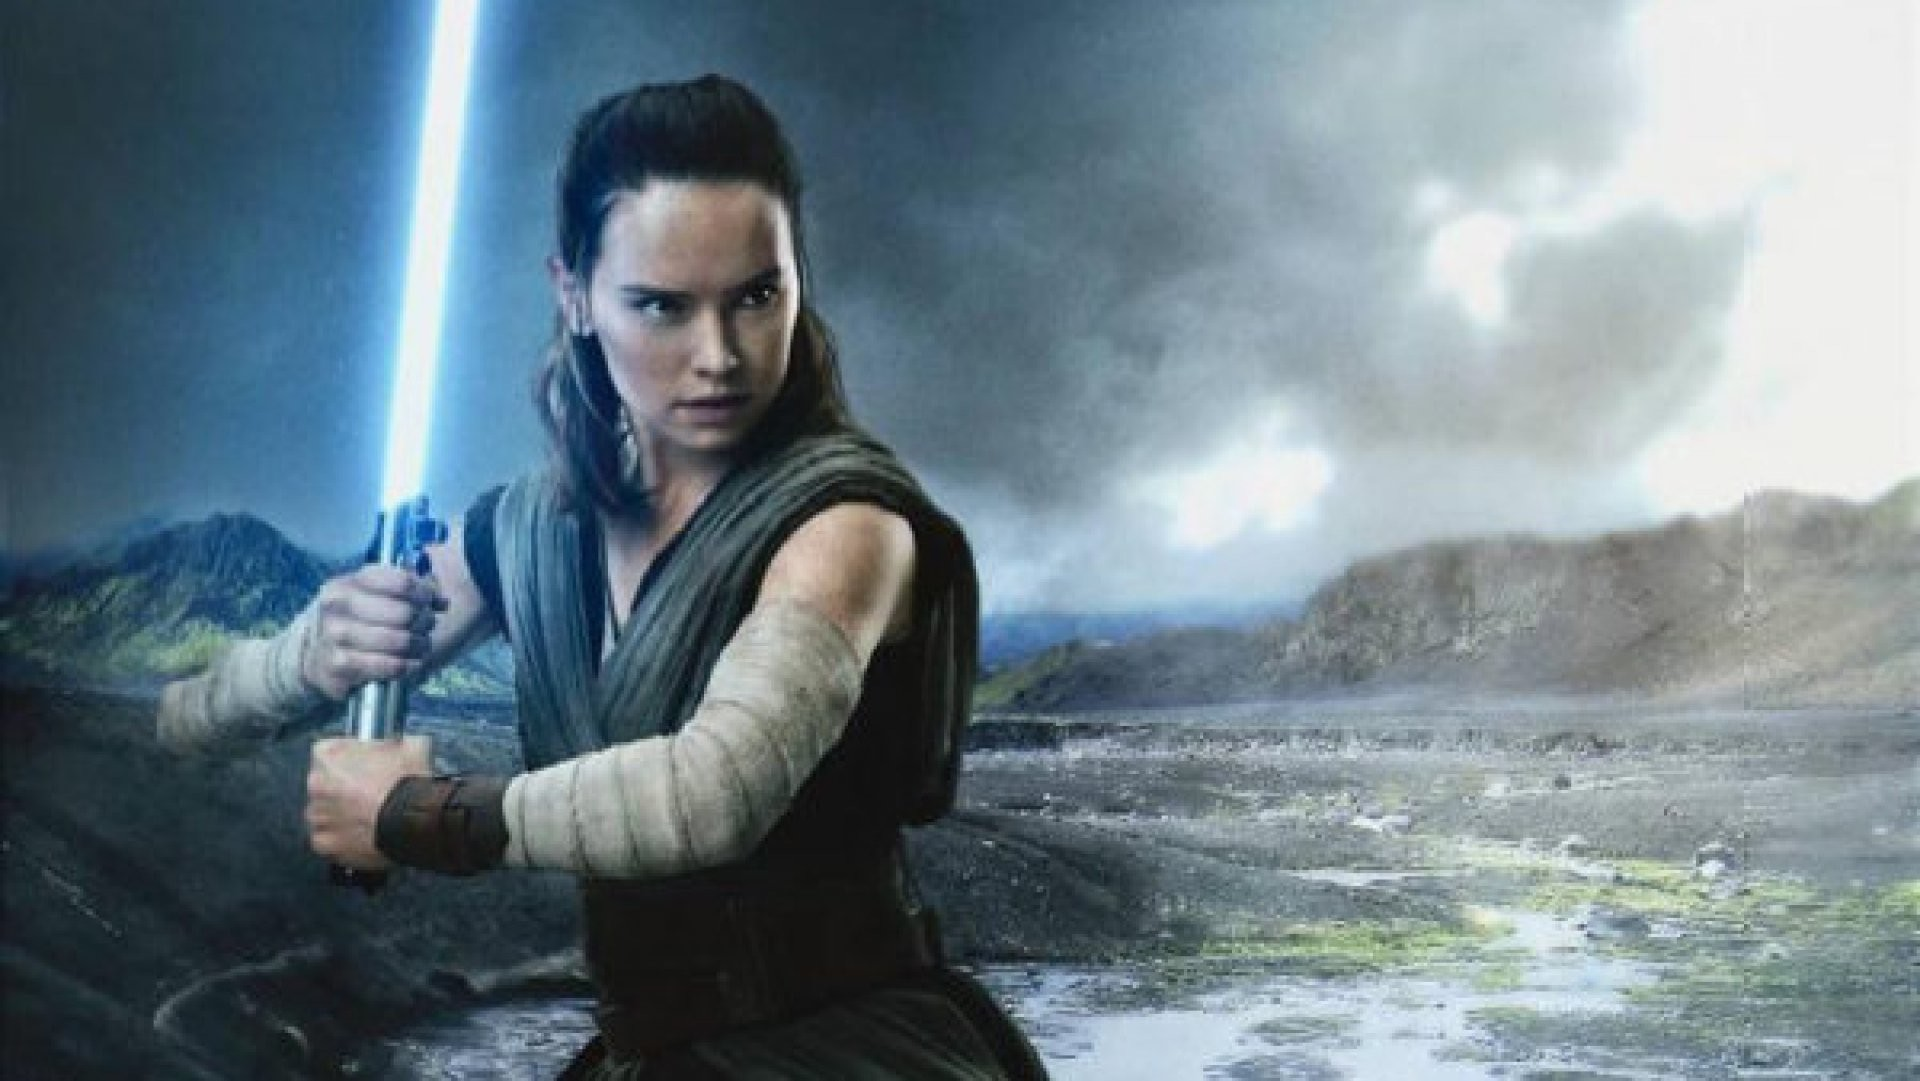 Rey Star Wars Wallpaper Posted By Michelle Johnson